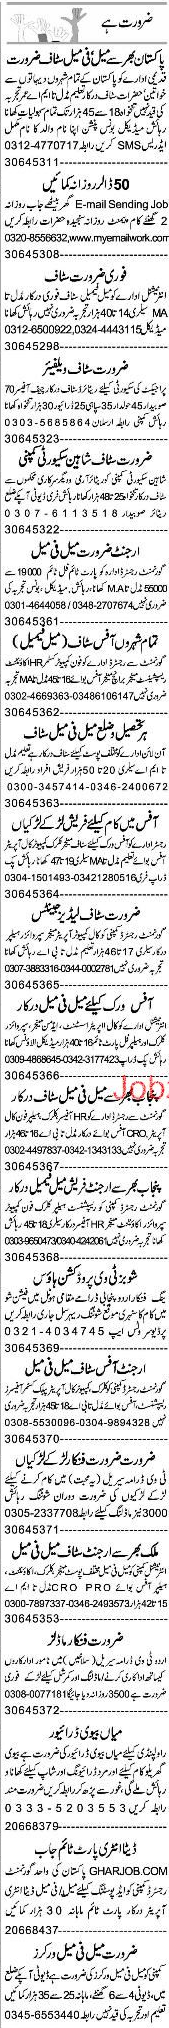 Telephone Operators, Branch Manager Job Opportunity